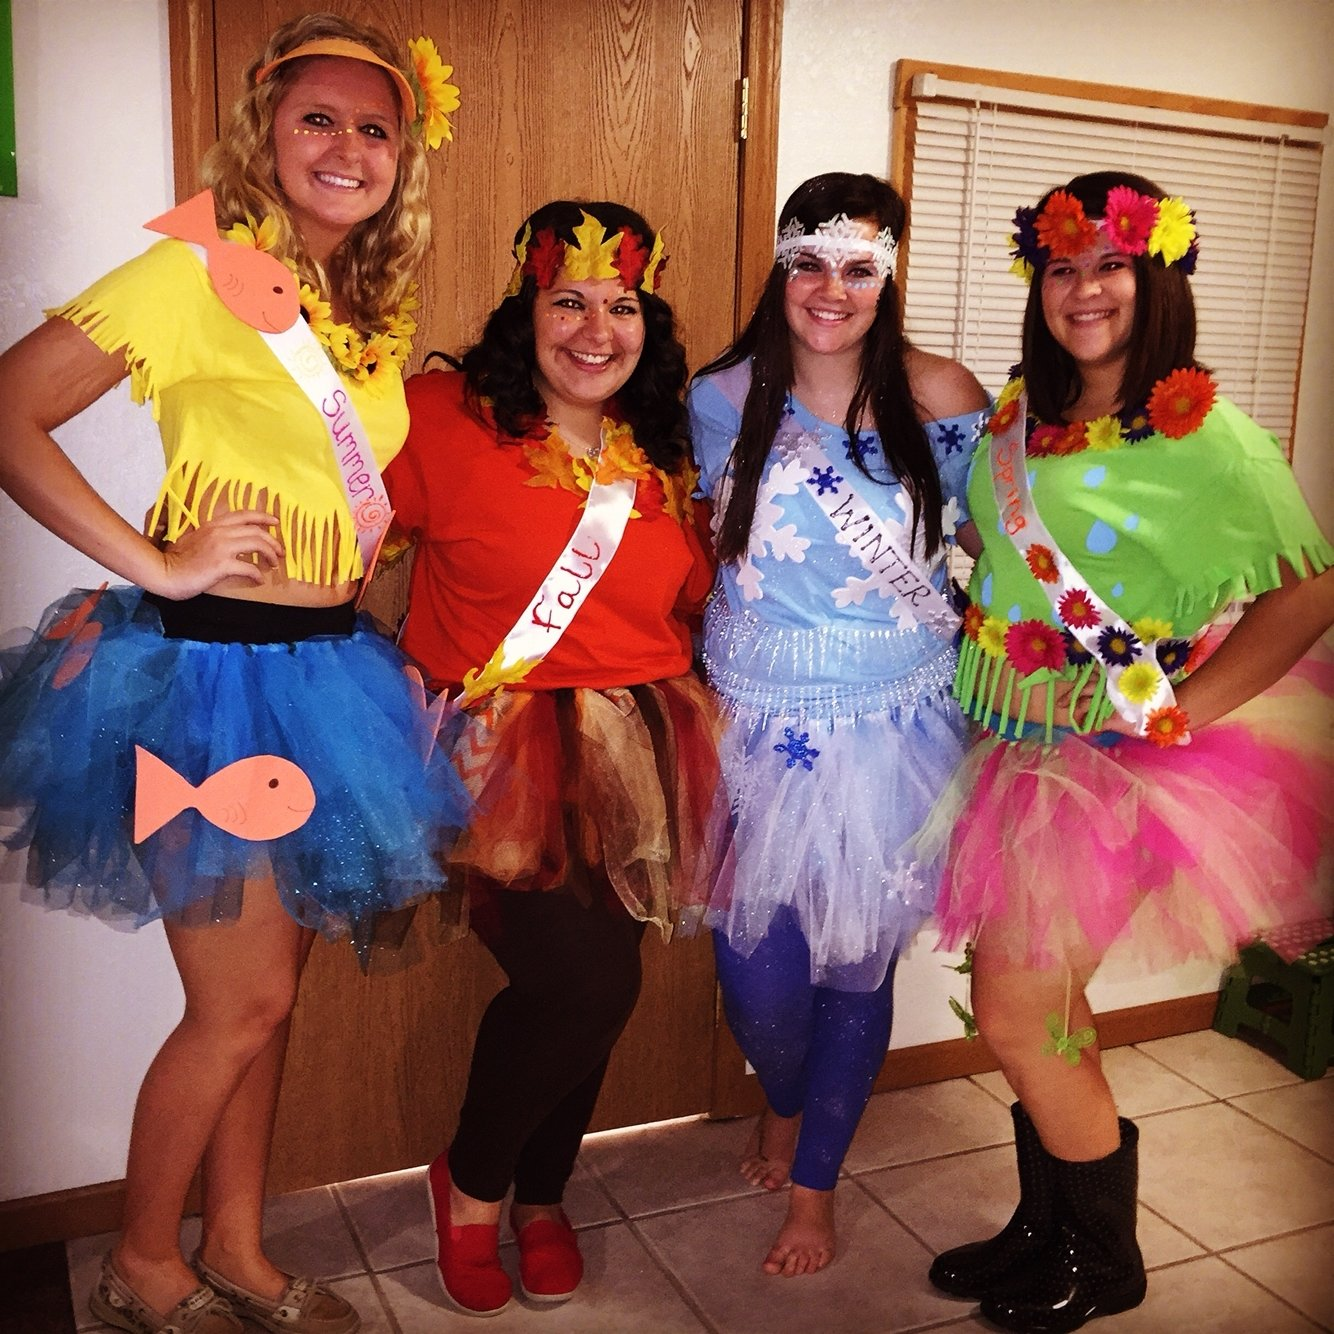 10 Amazing Costume Ideas For Groups Of 3 2019 Creative Halloween Costumes For Women Groups